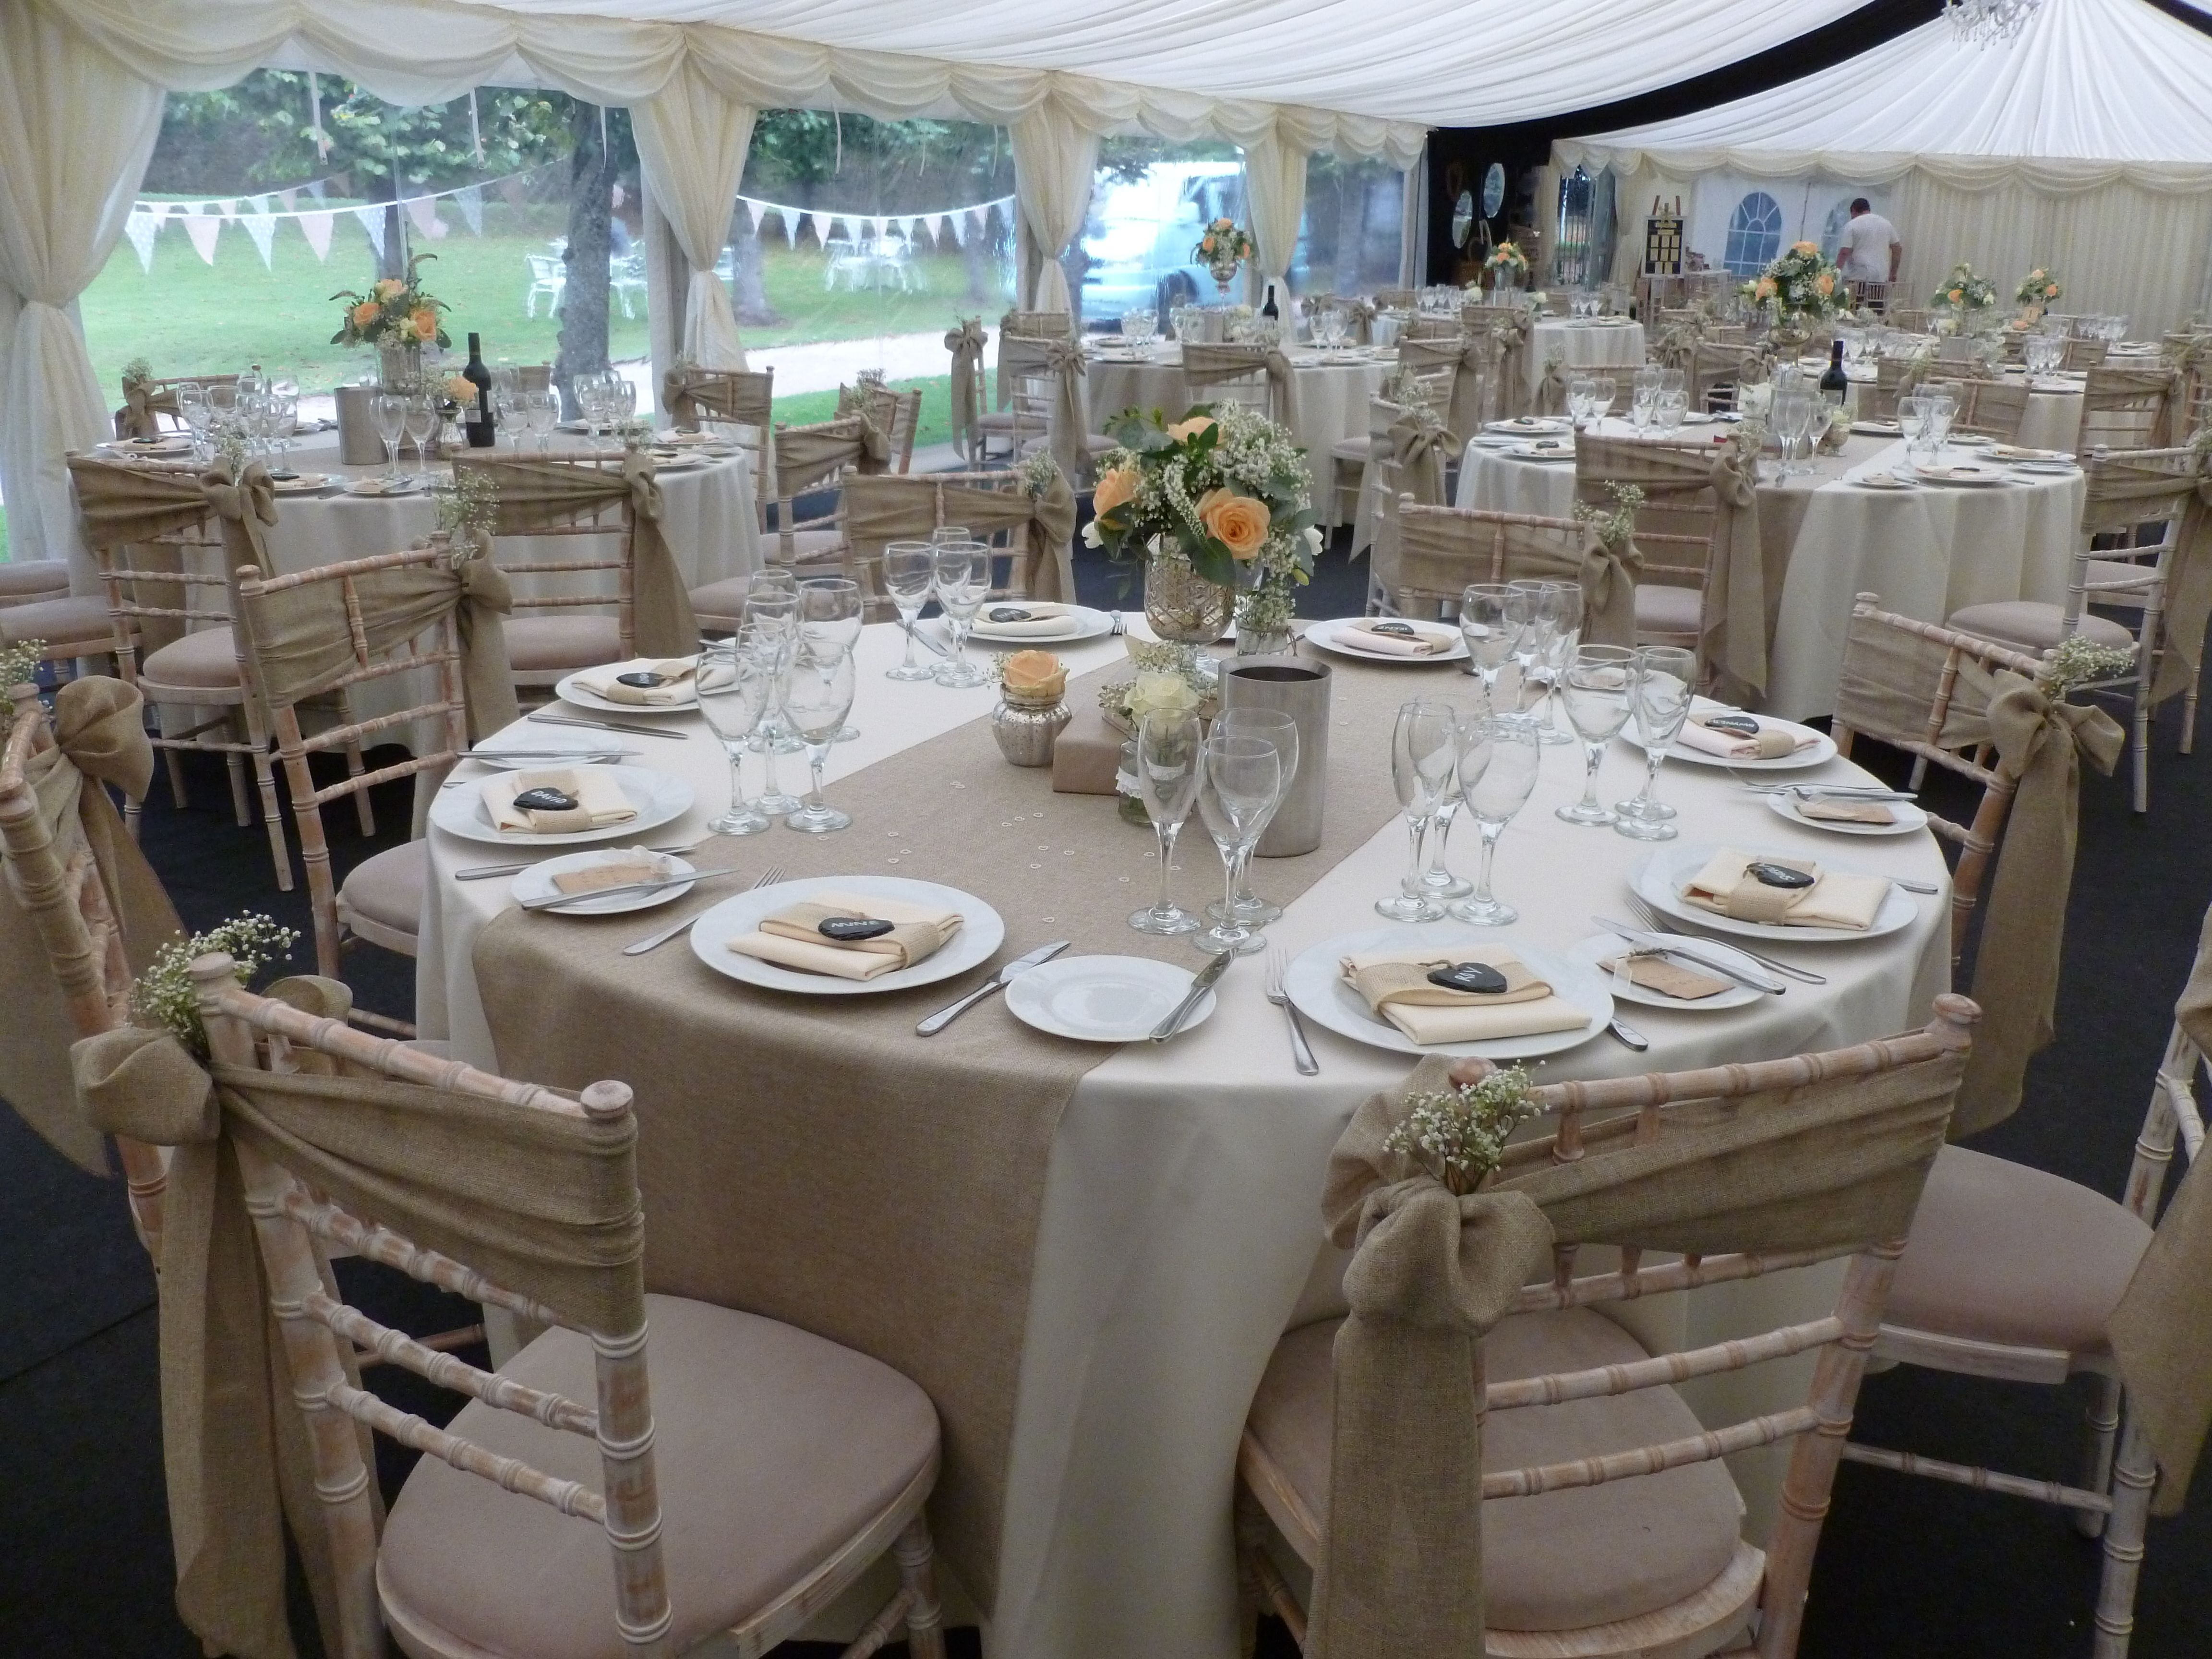 chiavari chair covers for weddings joie mimzy owl highchair burlap sashes and table runners dressed on chairs